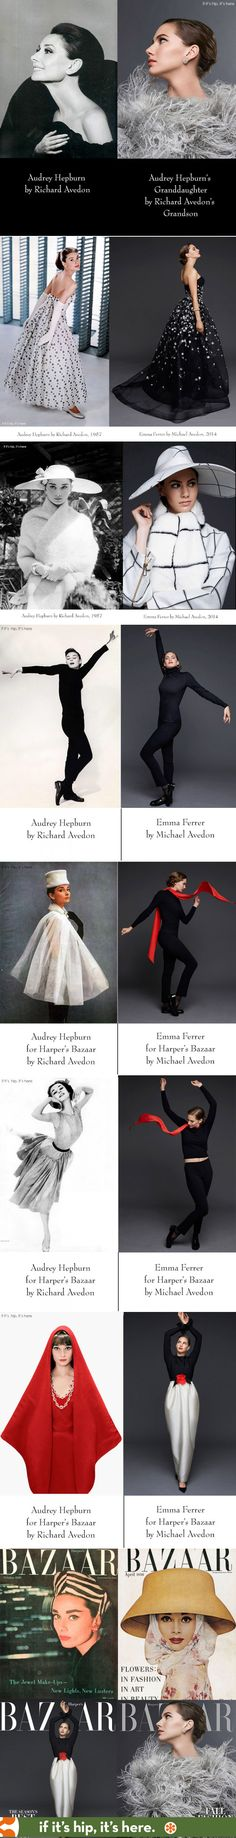 Audrey Hepburn photographed by Richard Avedon compared with Emma Ferrer (Audrey's granddaughter) by Michael Avedon (Richard's grandson). ©ifitshipitshere